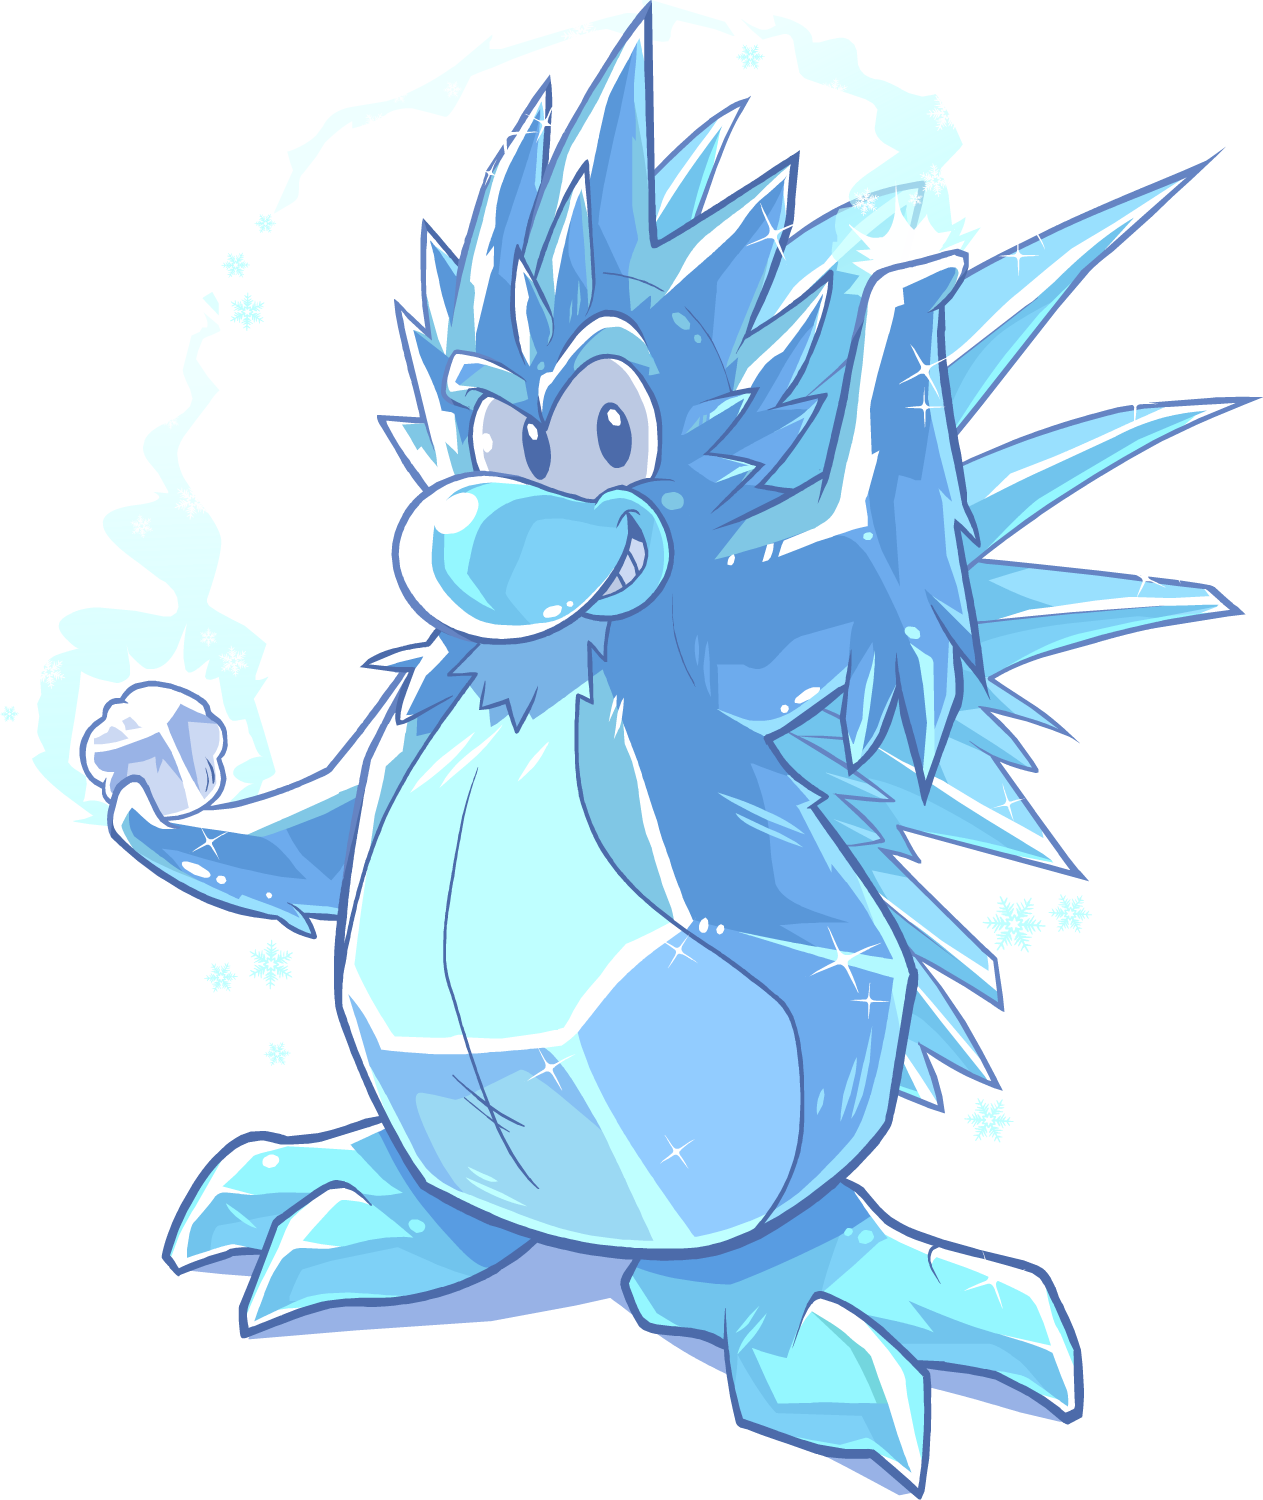 Icicles clipart icy road. Frost bite club penguin